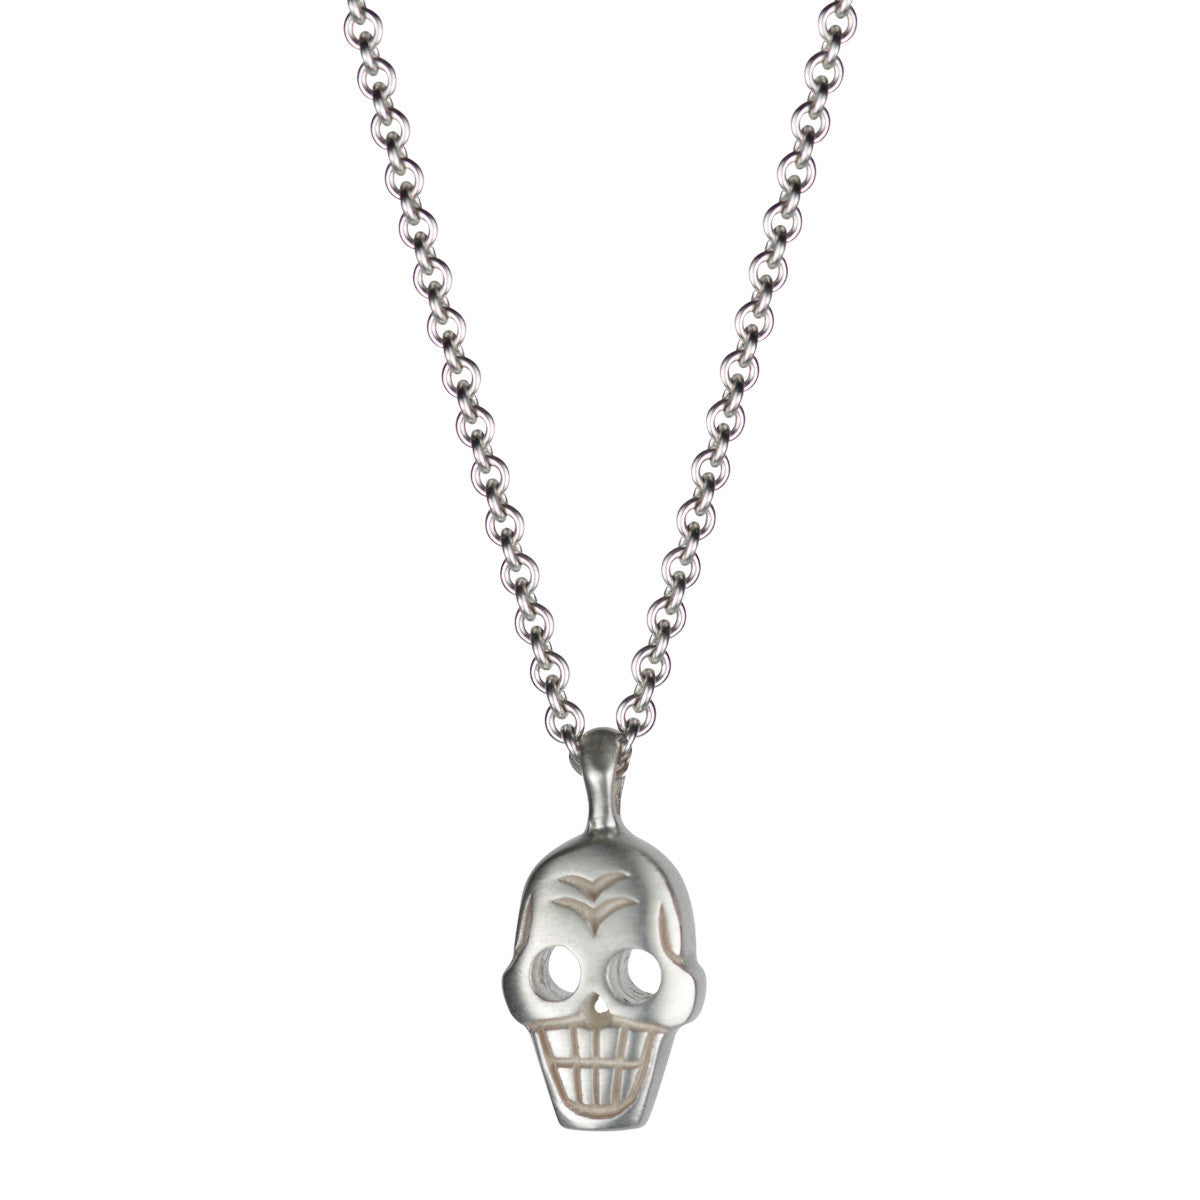 Men's Sterling Silver Large Skull Pendant